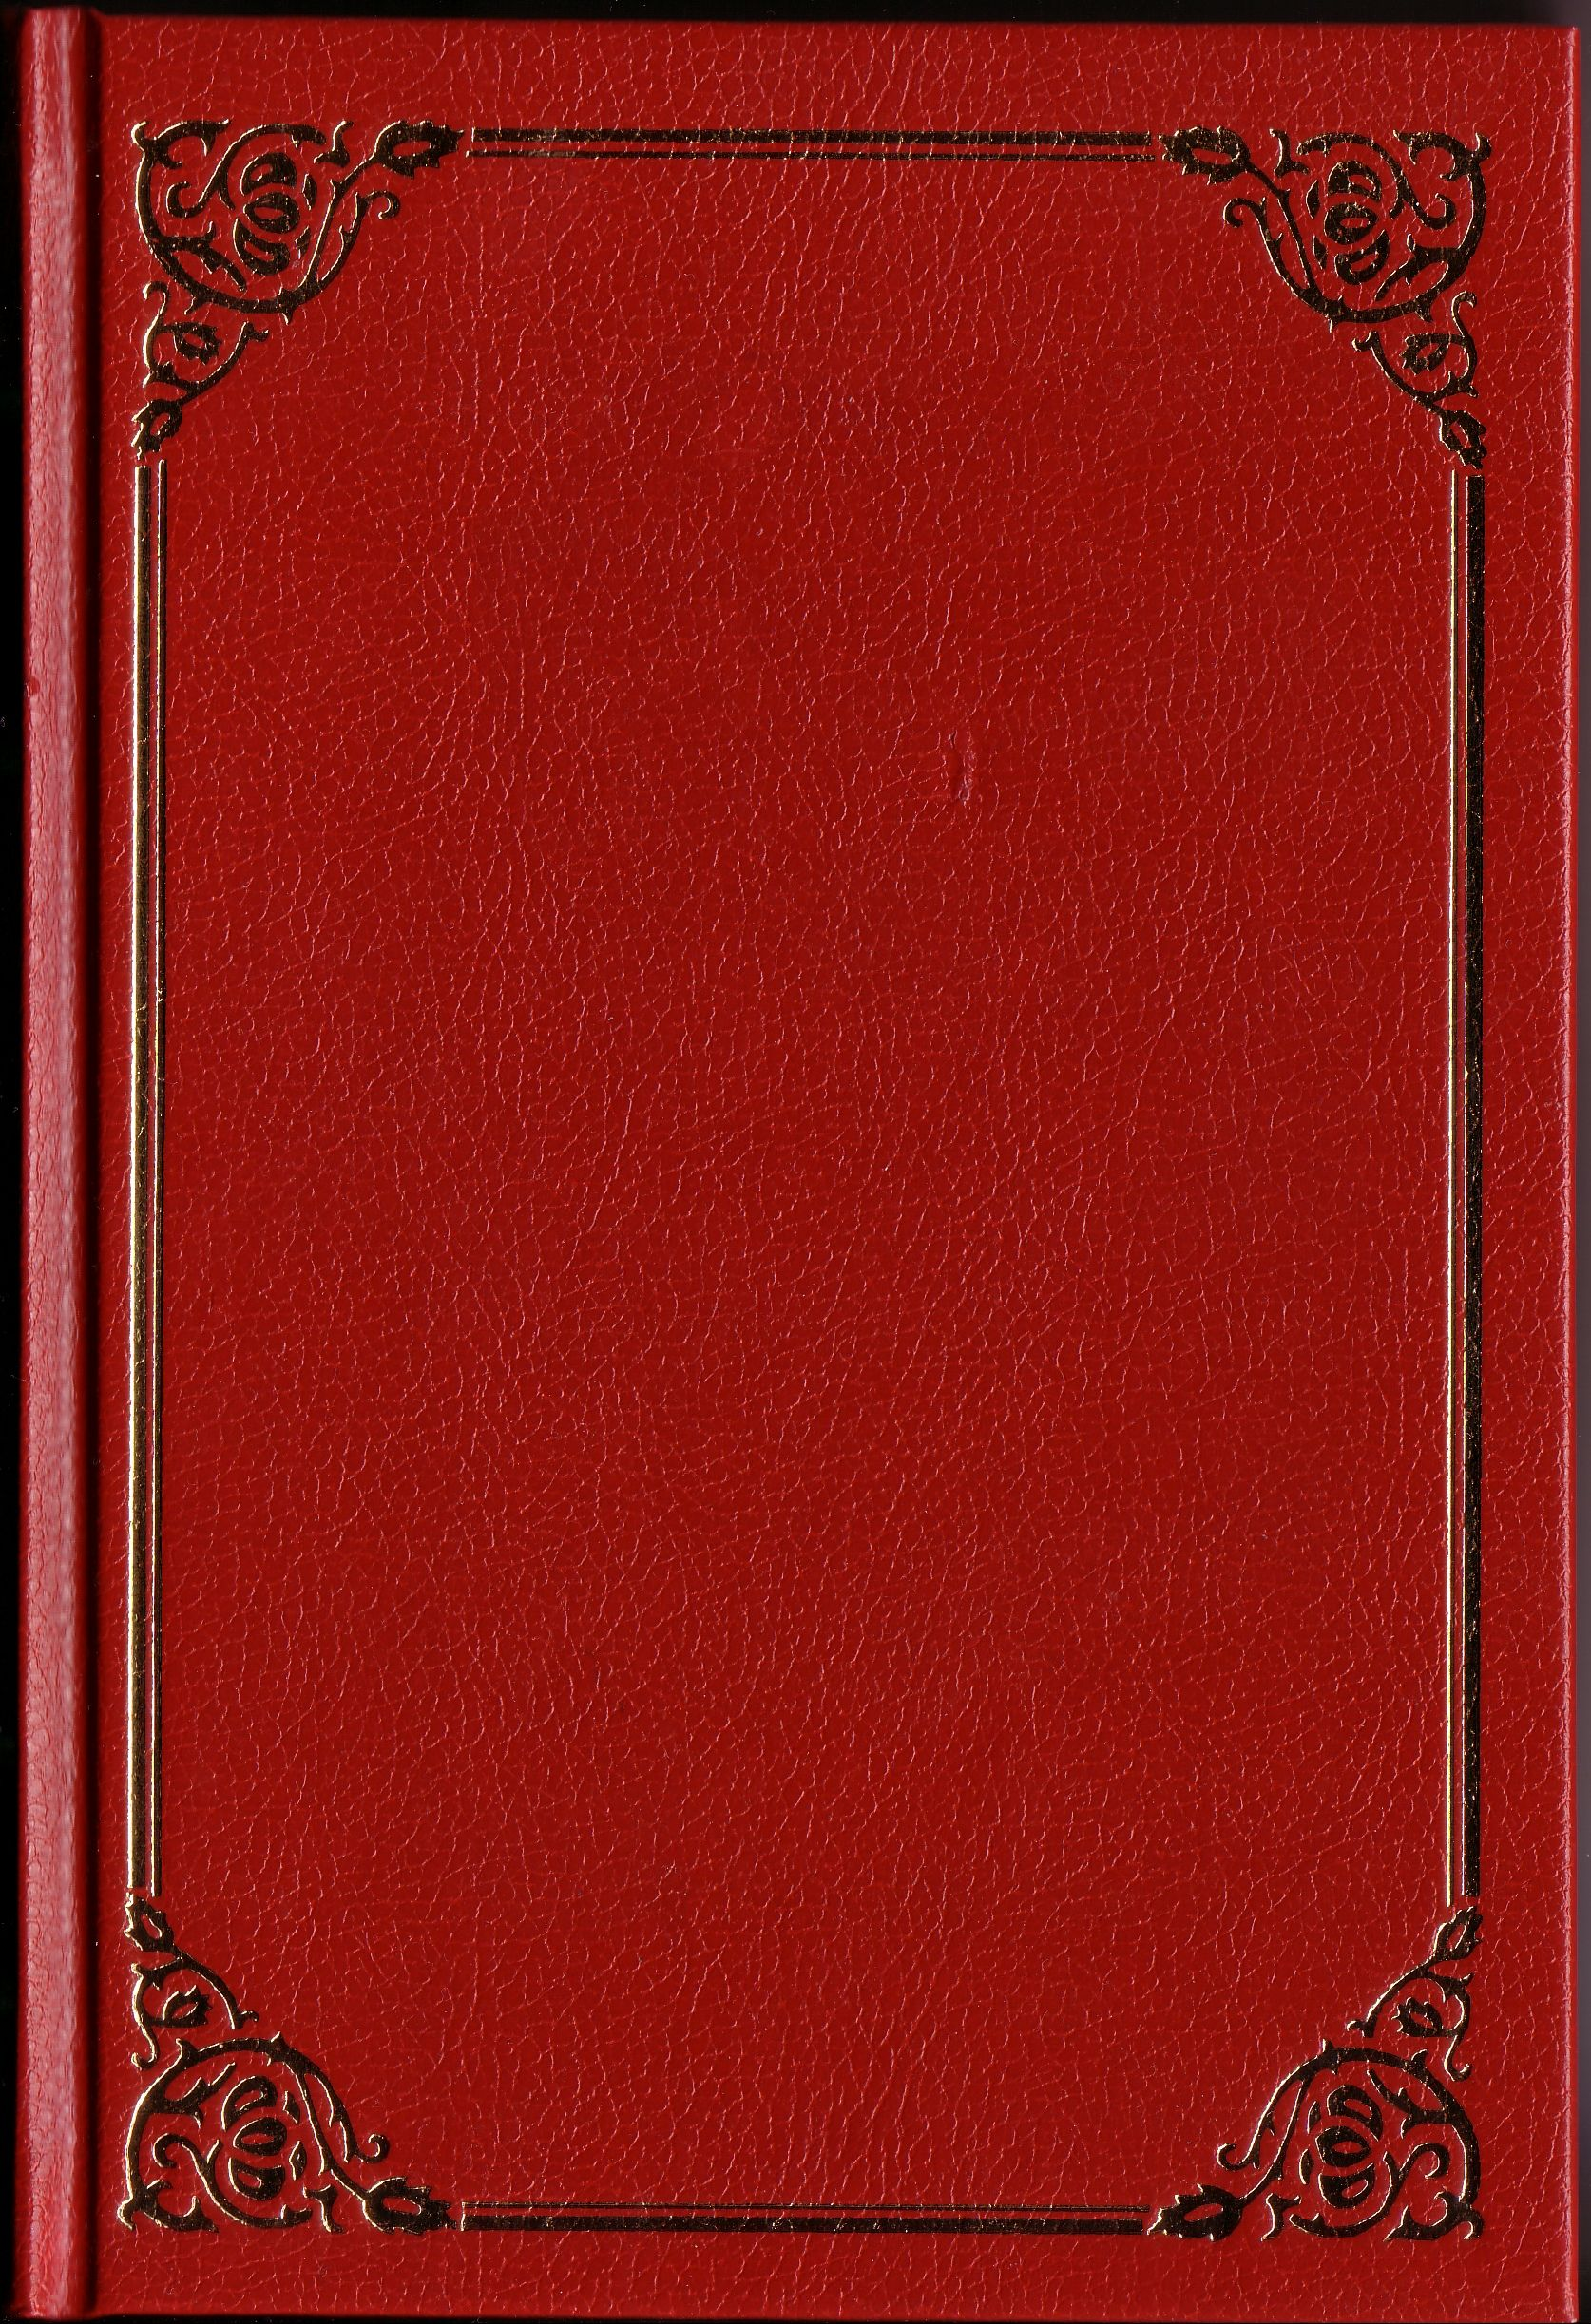 Red Book 2 Book Cover Template Book Cover Blank Book Cover